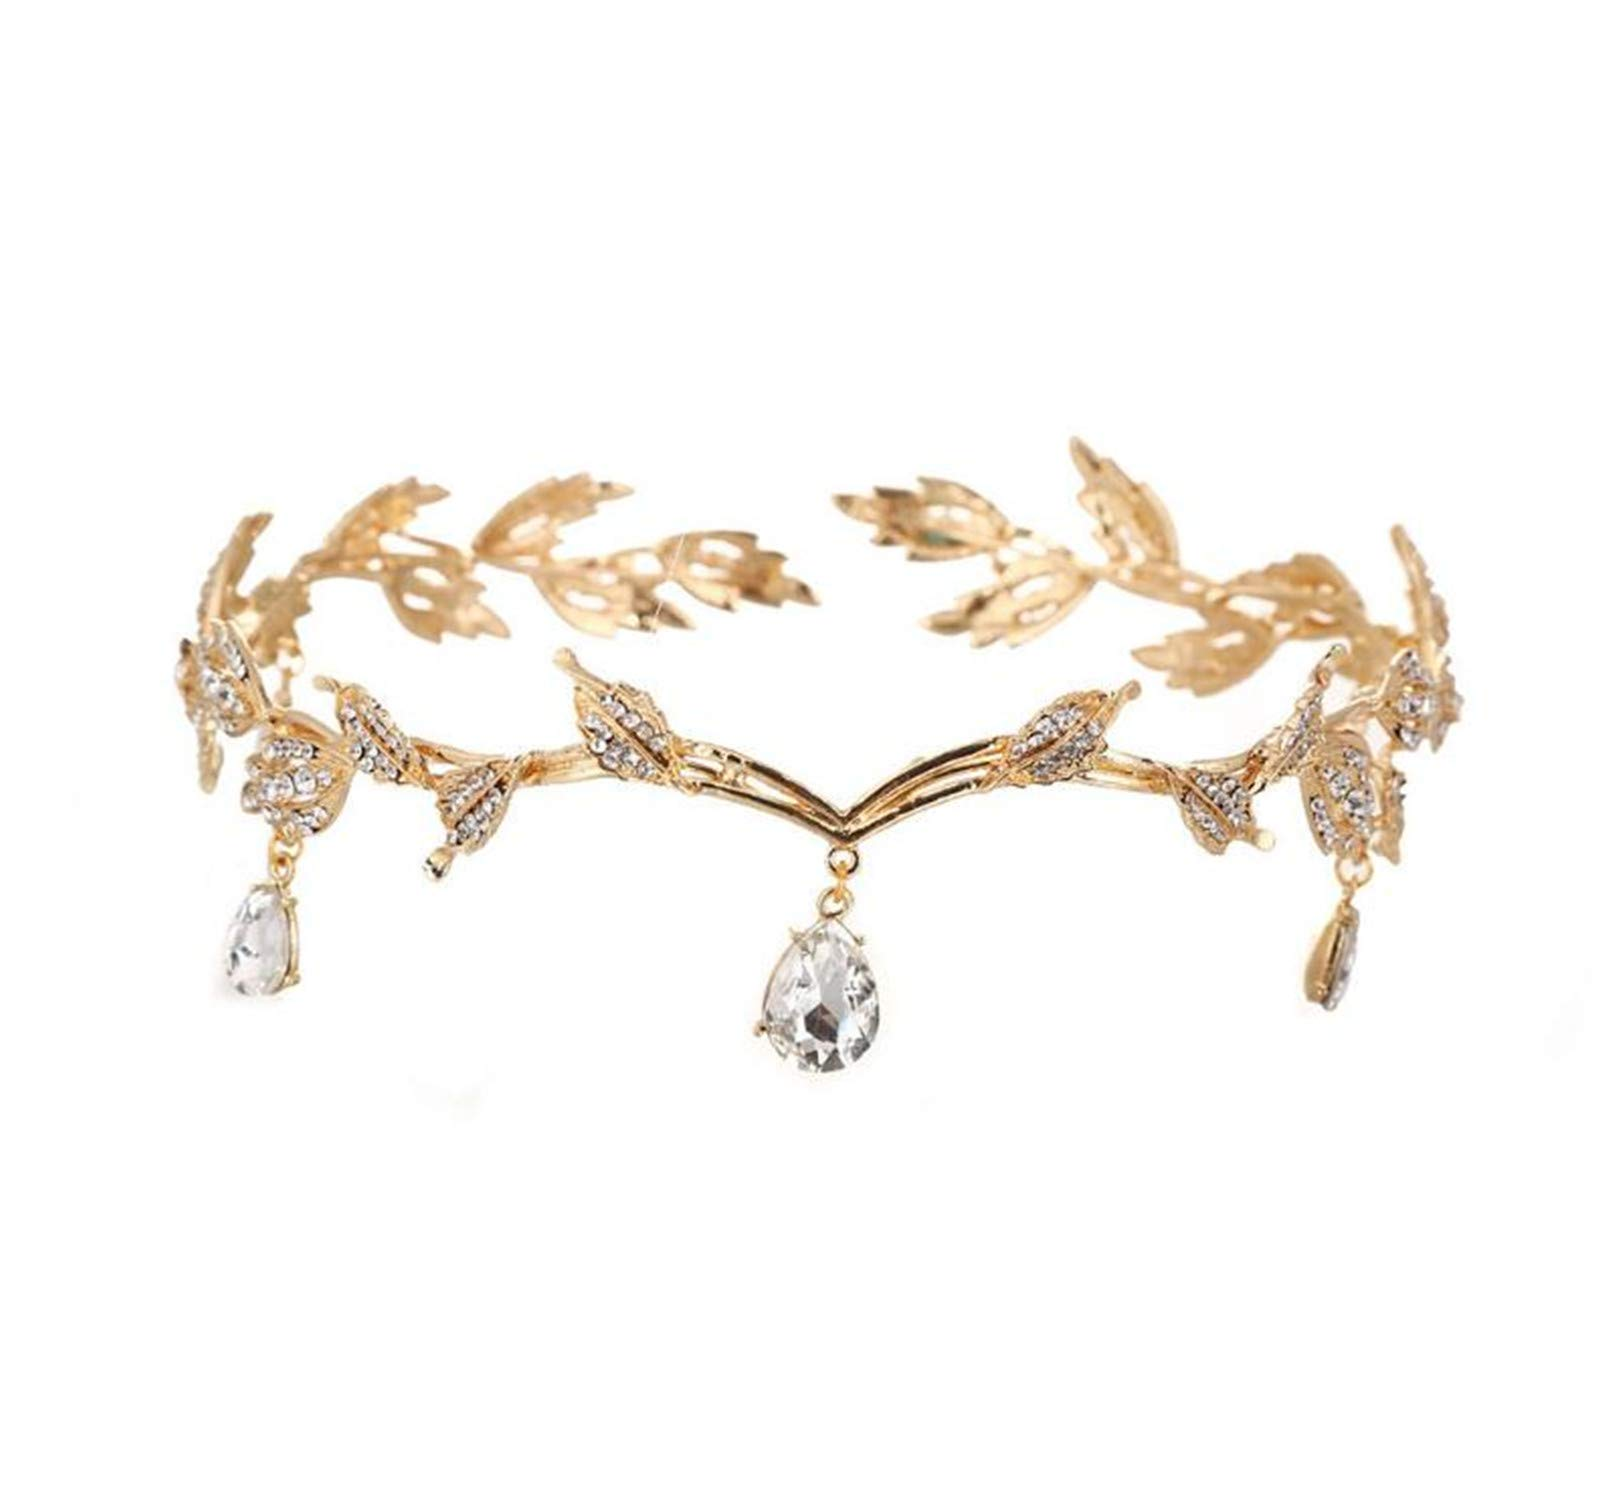 Wiipu Elegant Rhinestone Leaf Wedding Headpiece Headband Bridal Tiara Crown(B630) (Gold)